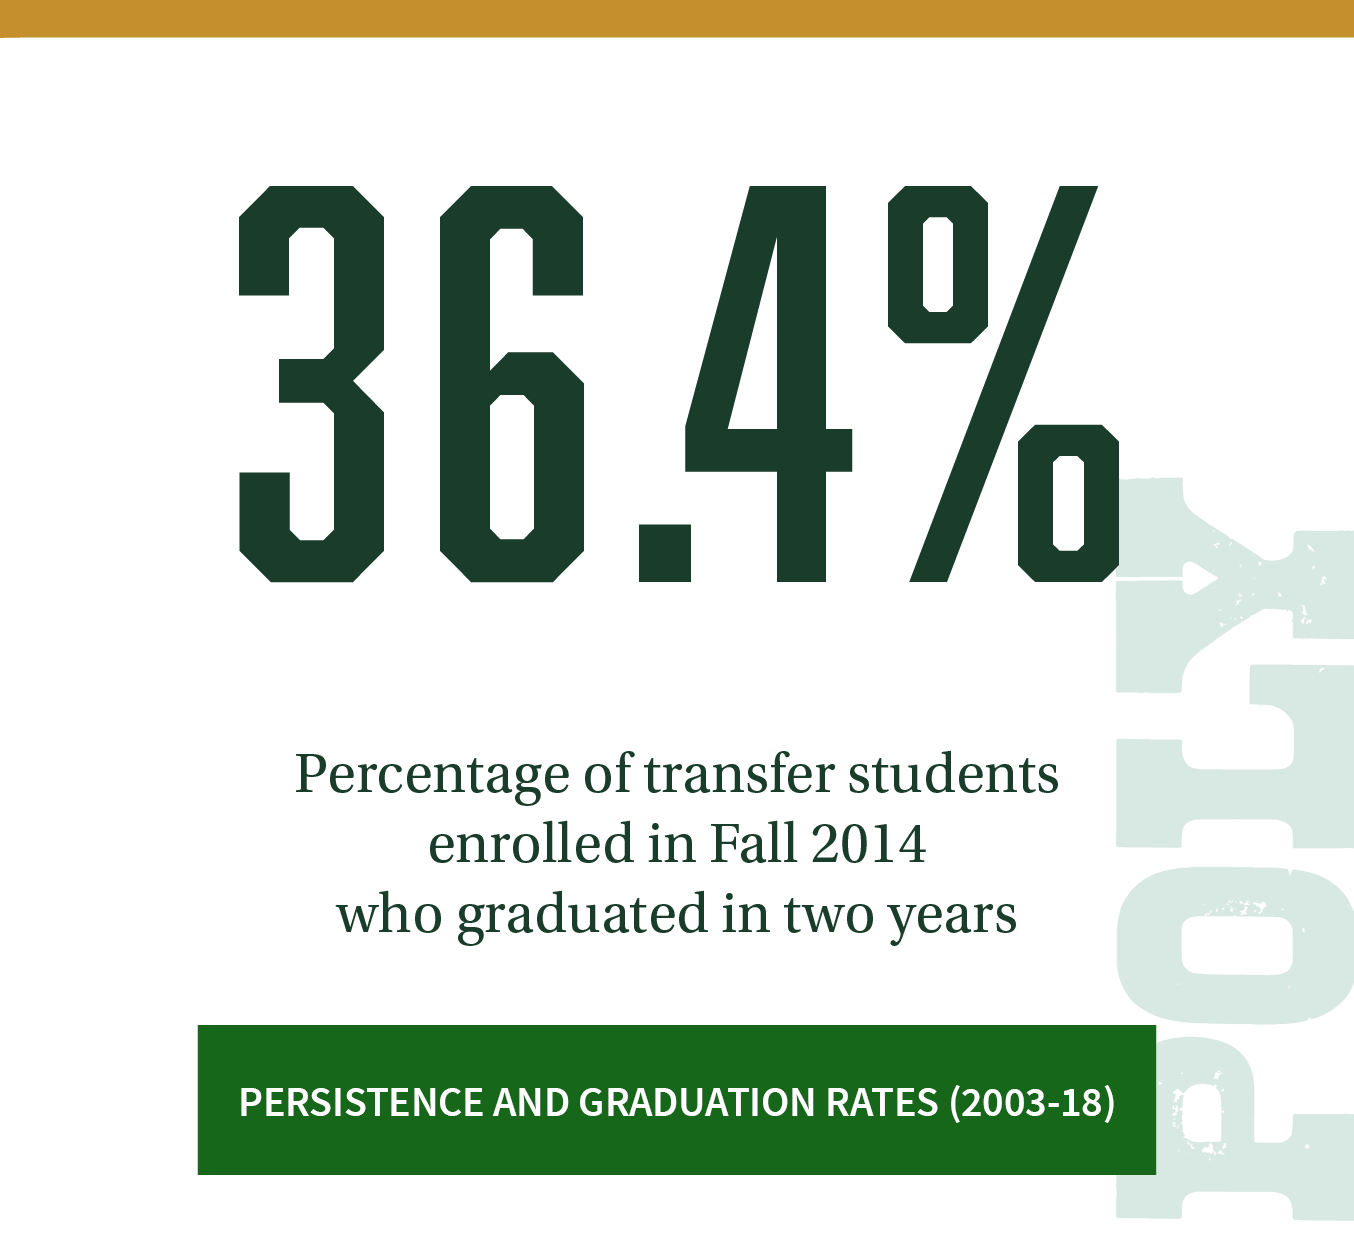 36.4%. Percentage of transfer students enrolled in Fall 2014 who graduated in two years. Click to review more persistence and graduation rates (2003-18).